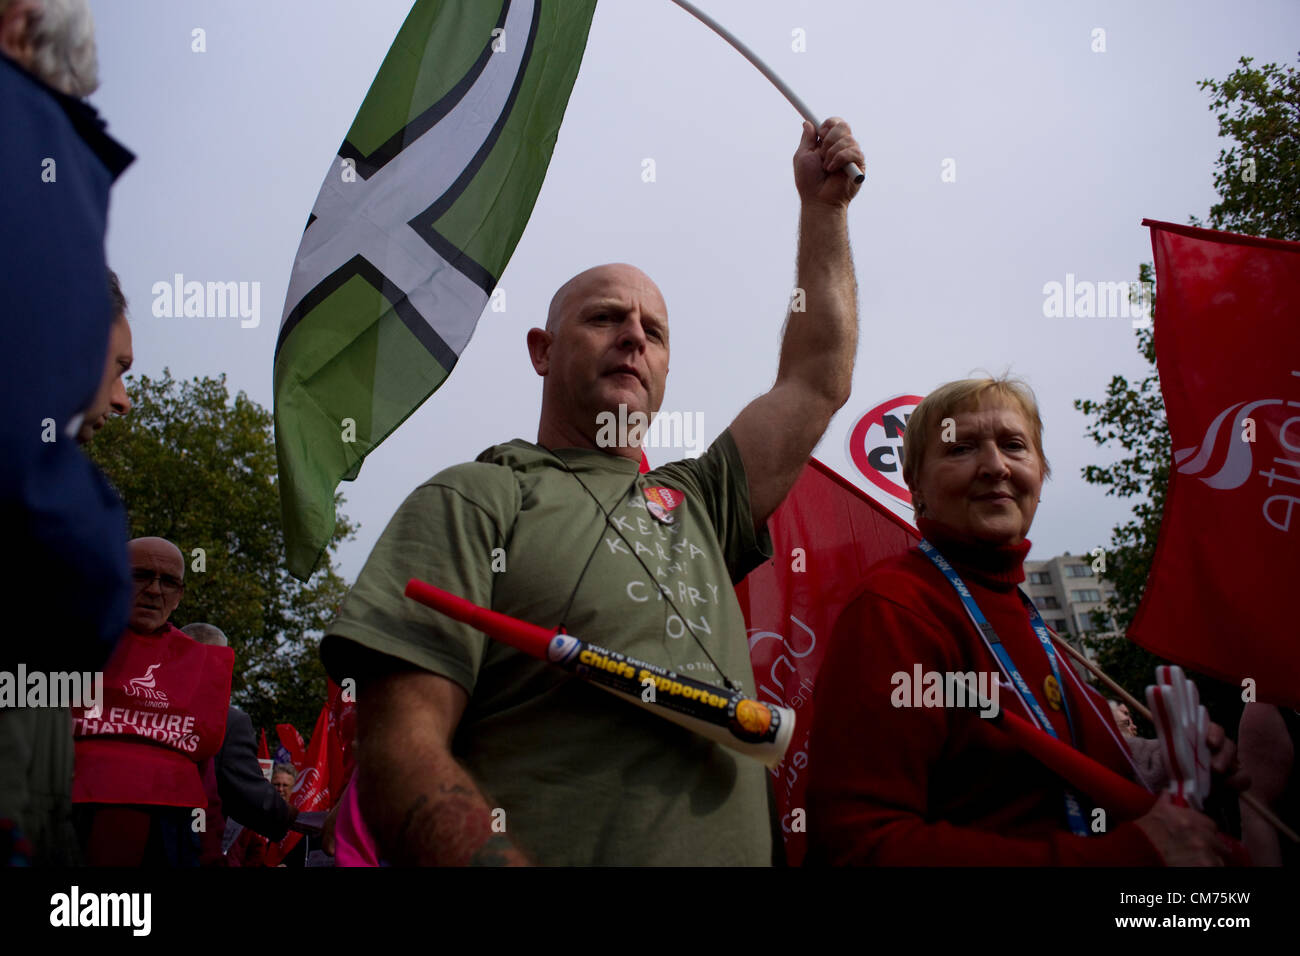 London, UK. 20th October 2012. TUC Rally in Hyde Park.London, UK. 20th October 2012. Credit:  Stephen Burrows / - Stock Image